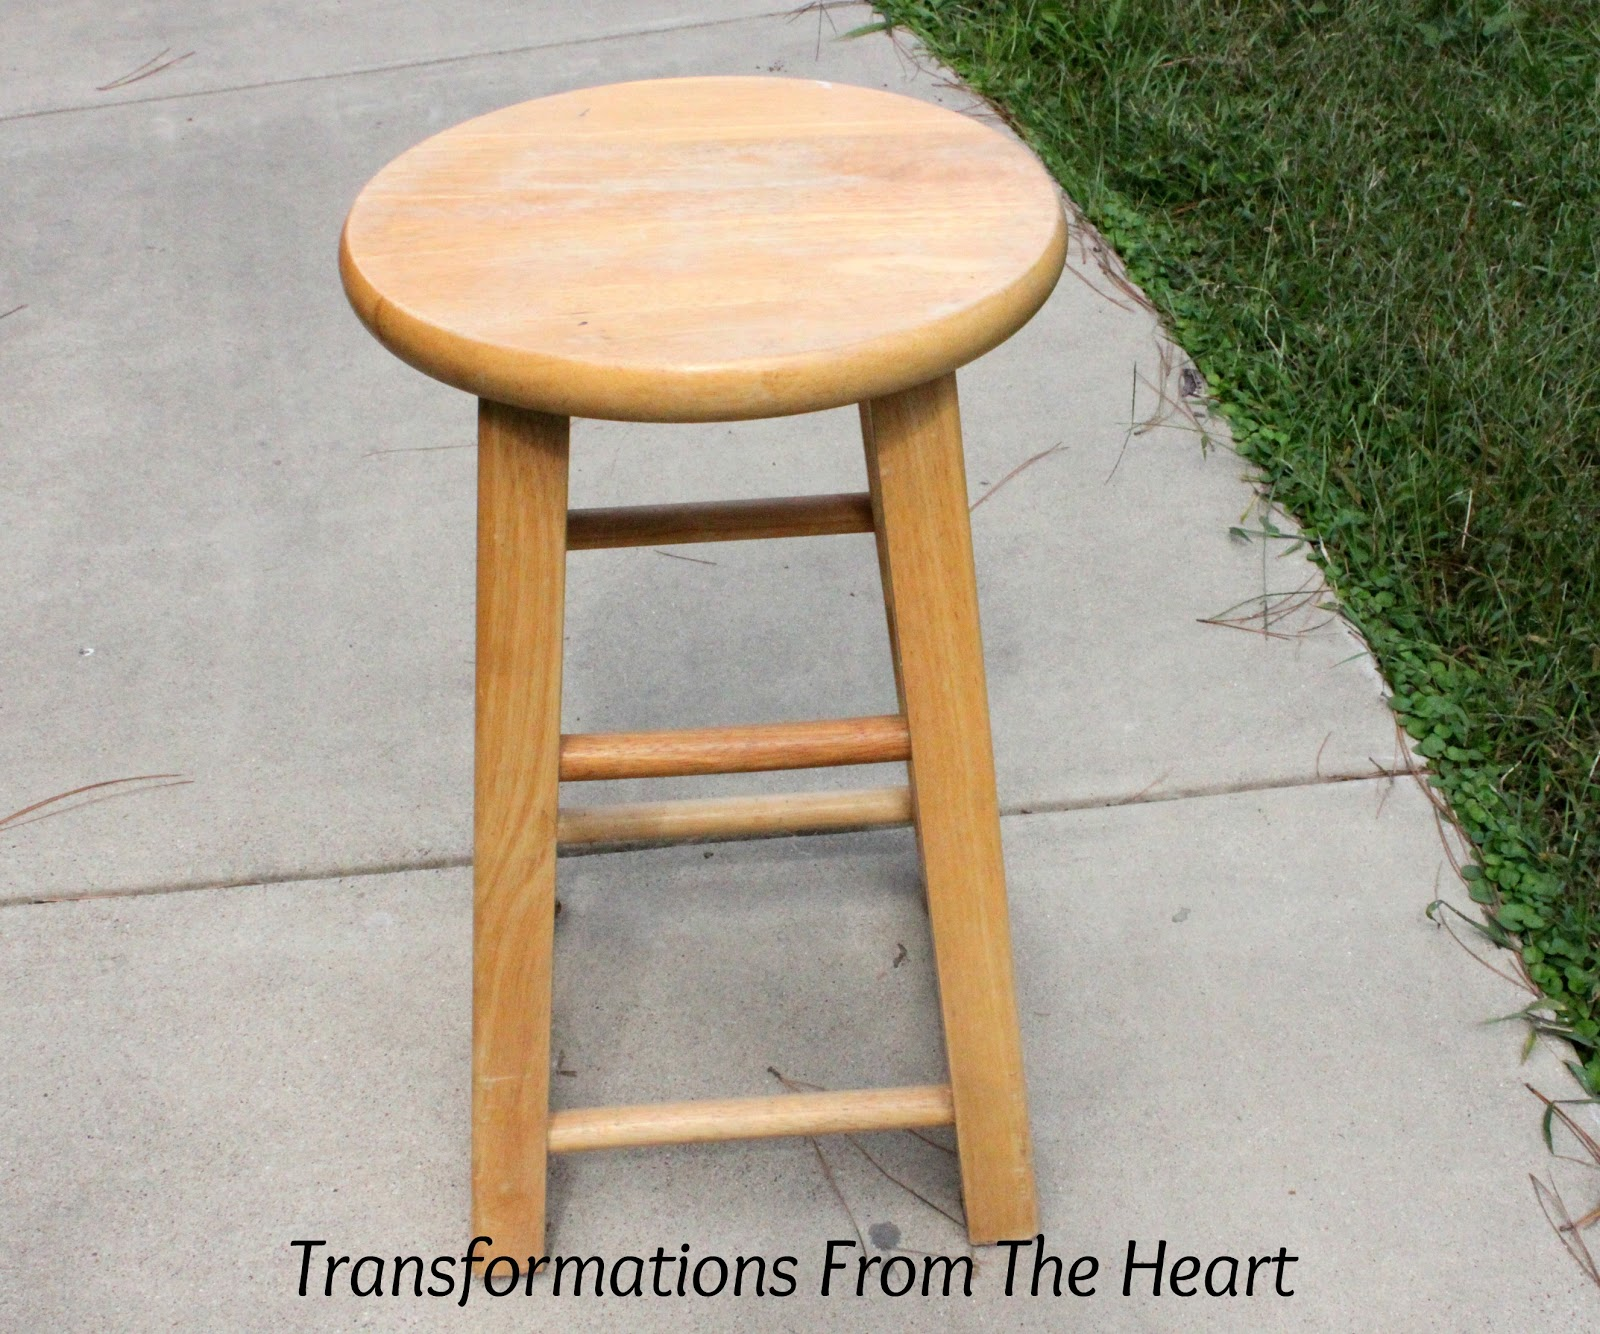 Uncategorized How To Build A Stool Out Of Wood transformations from the heart diy industriallook painted wood stool stool